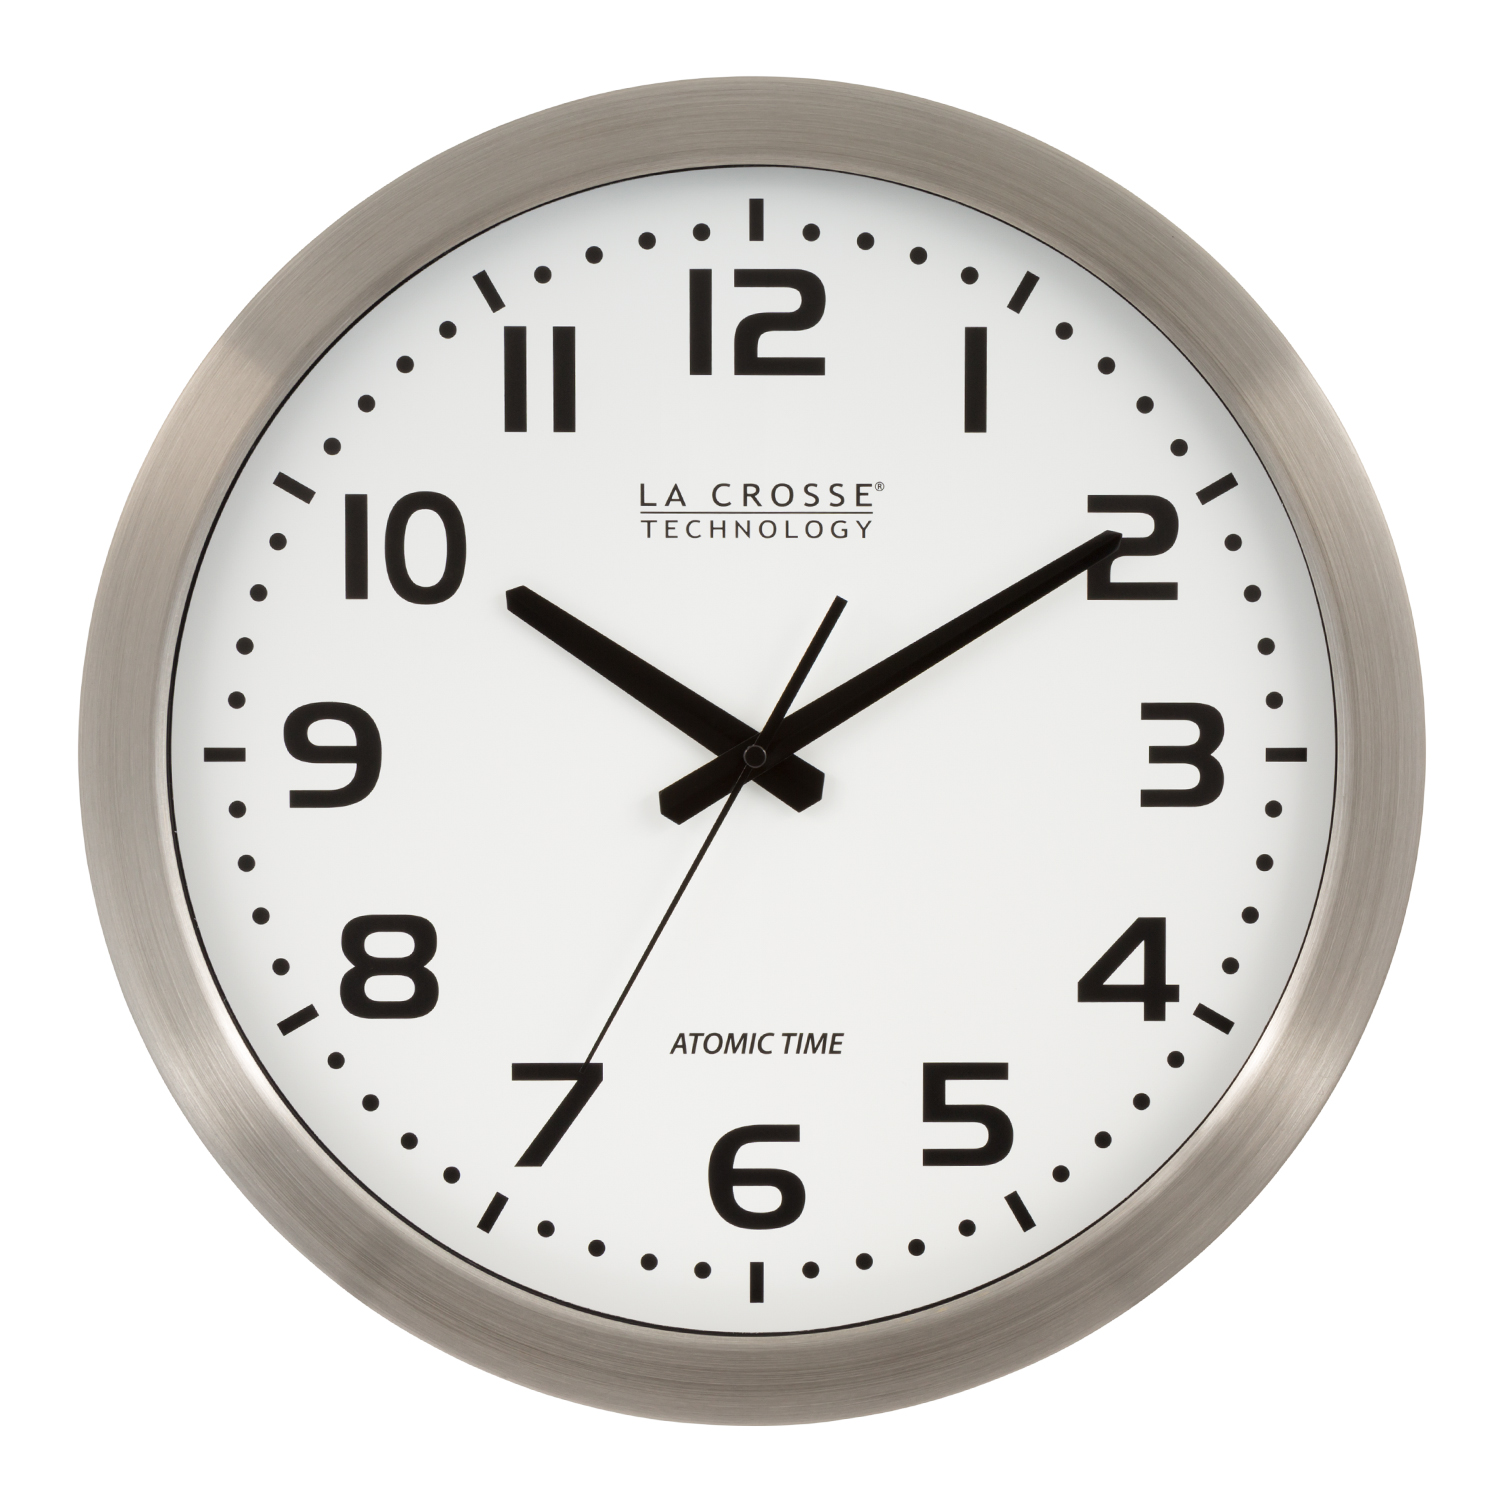 "La Crosse Technology 16"" Stainless Steel Atomic Clock, White Dial"